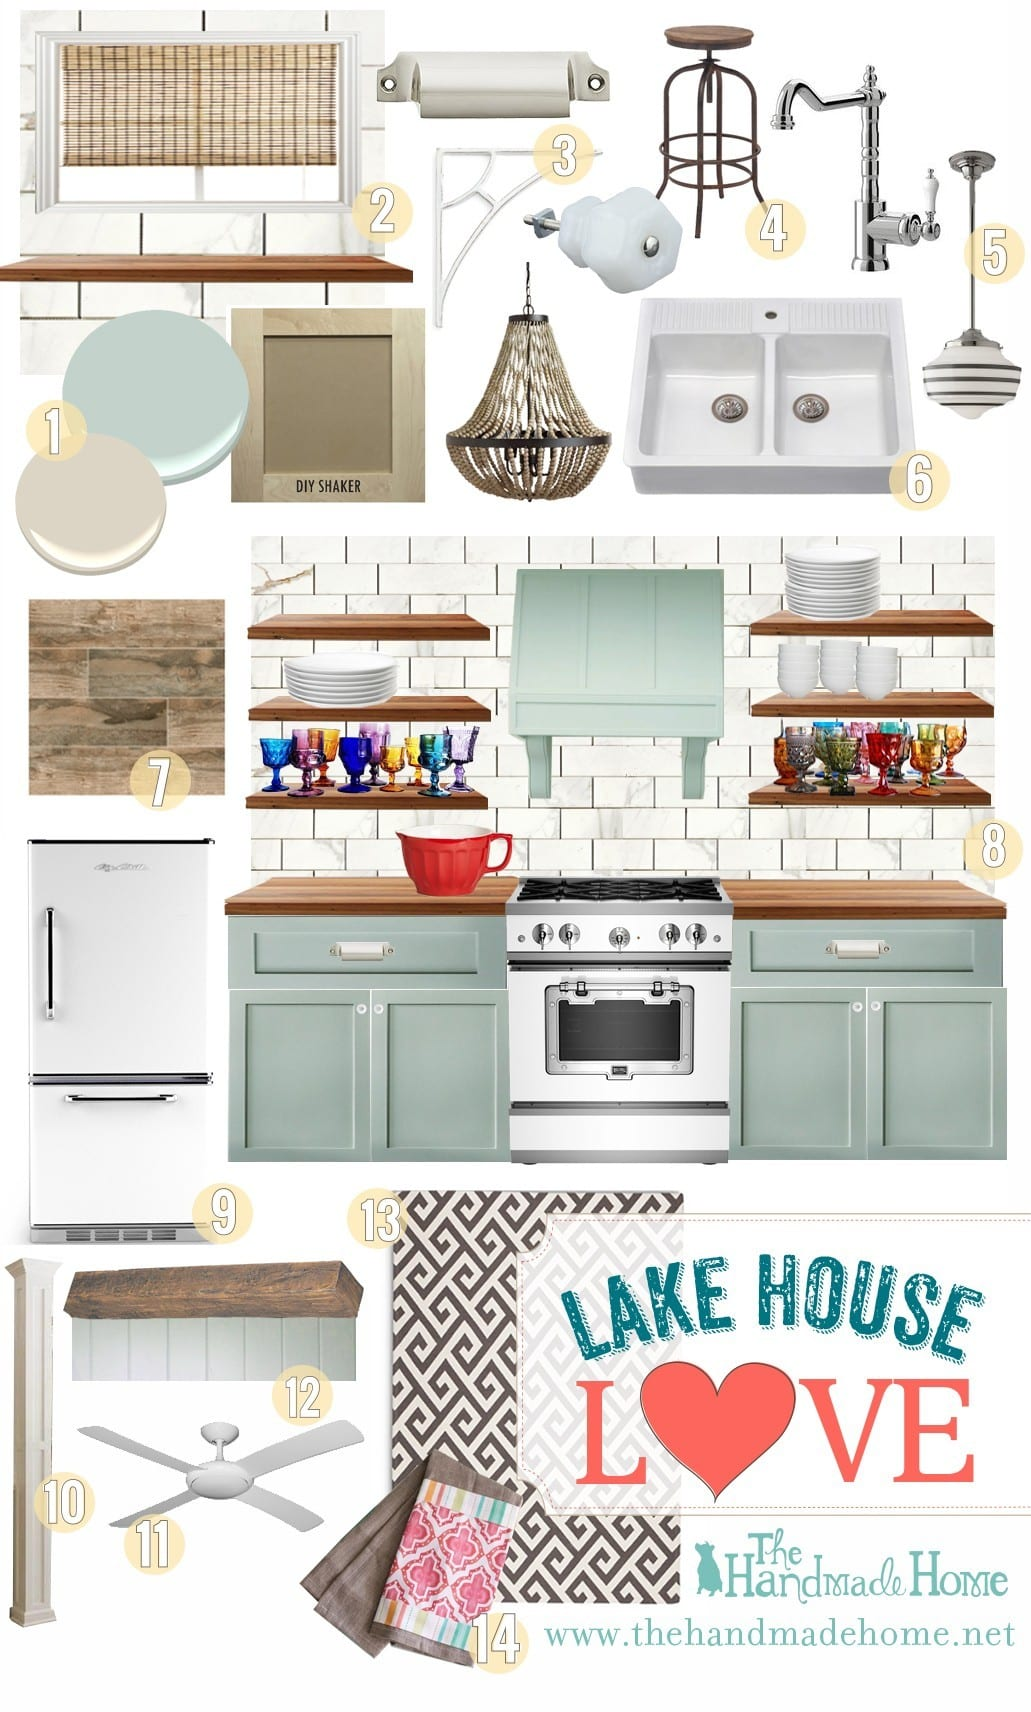 kitchen_lakehouse